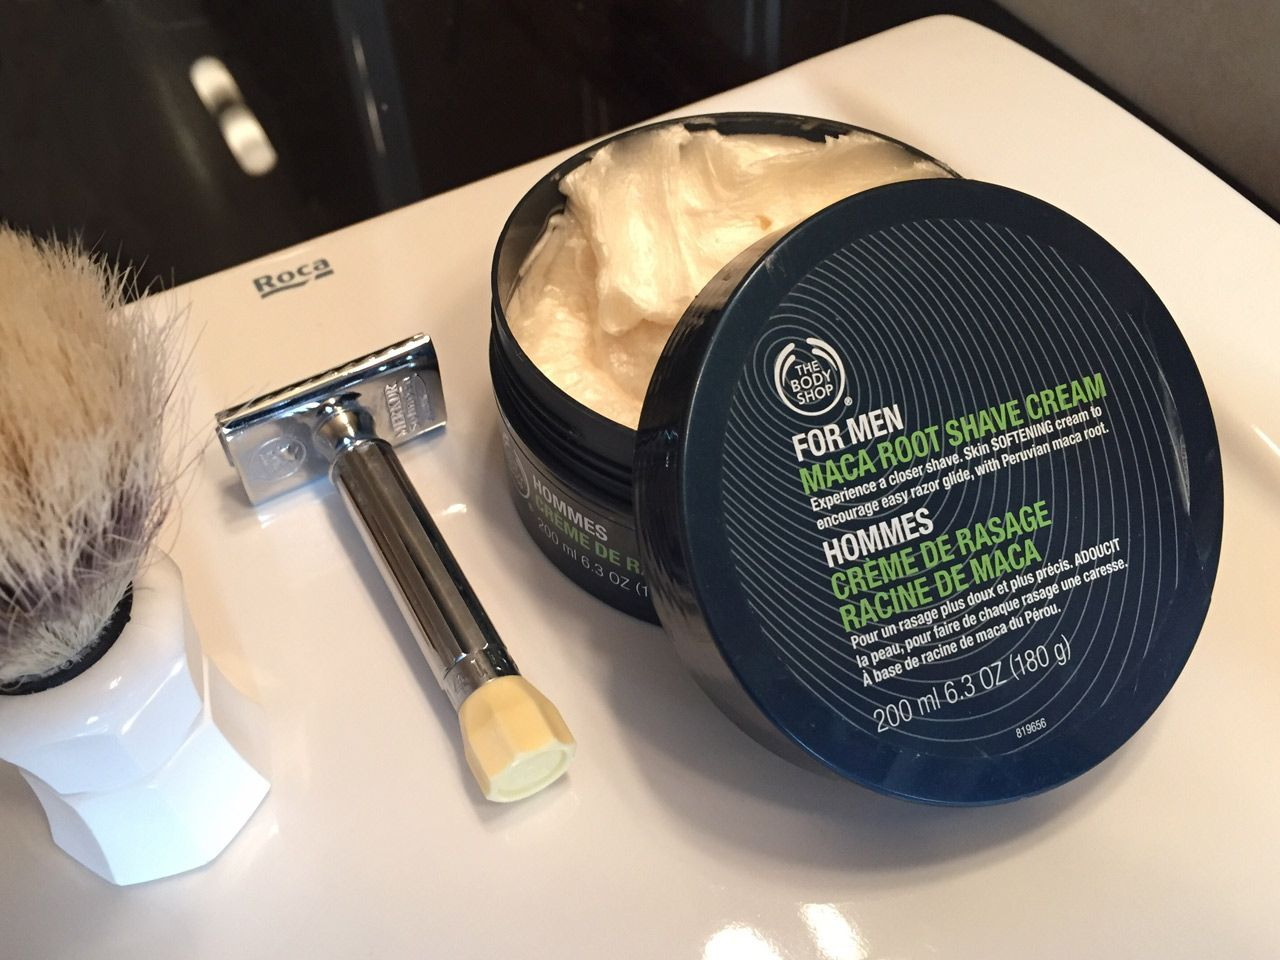 You are currently viewing The Body Shop Maca Root Shave Cream – recenzja kremu do golenia